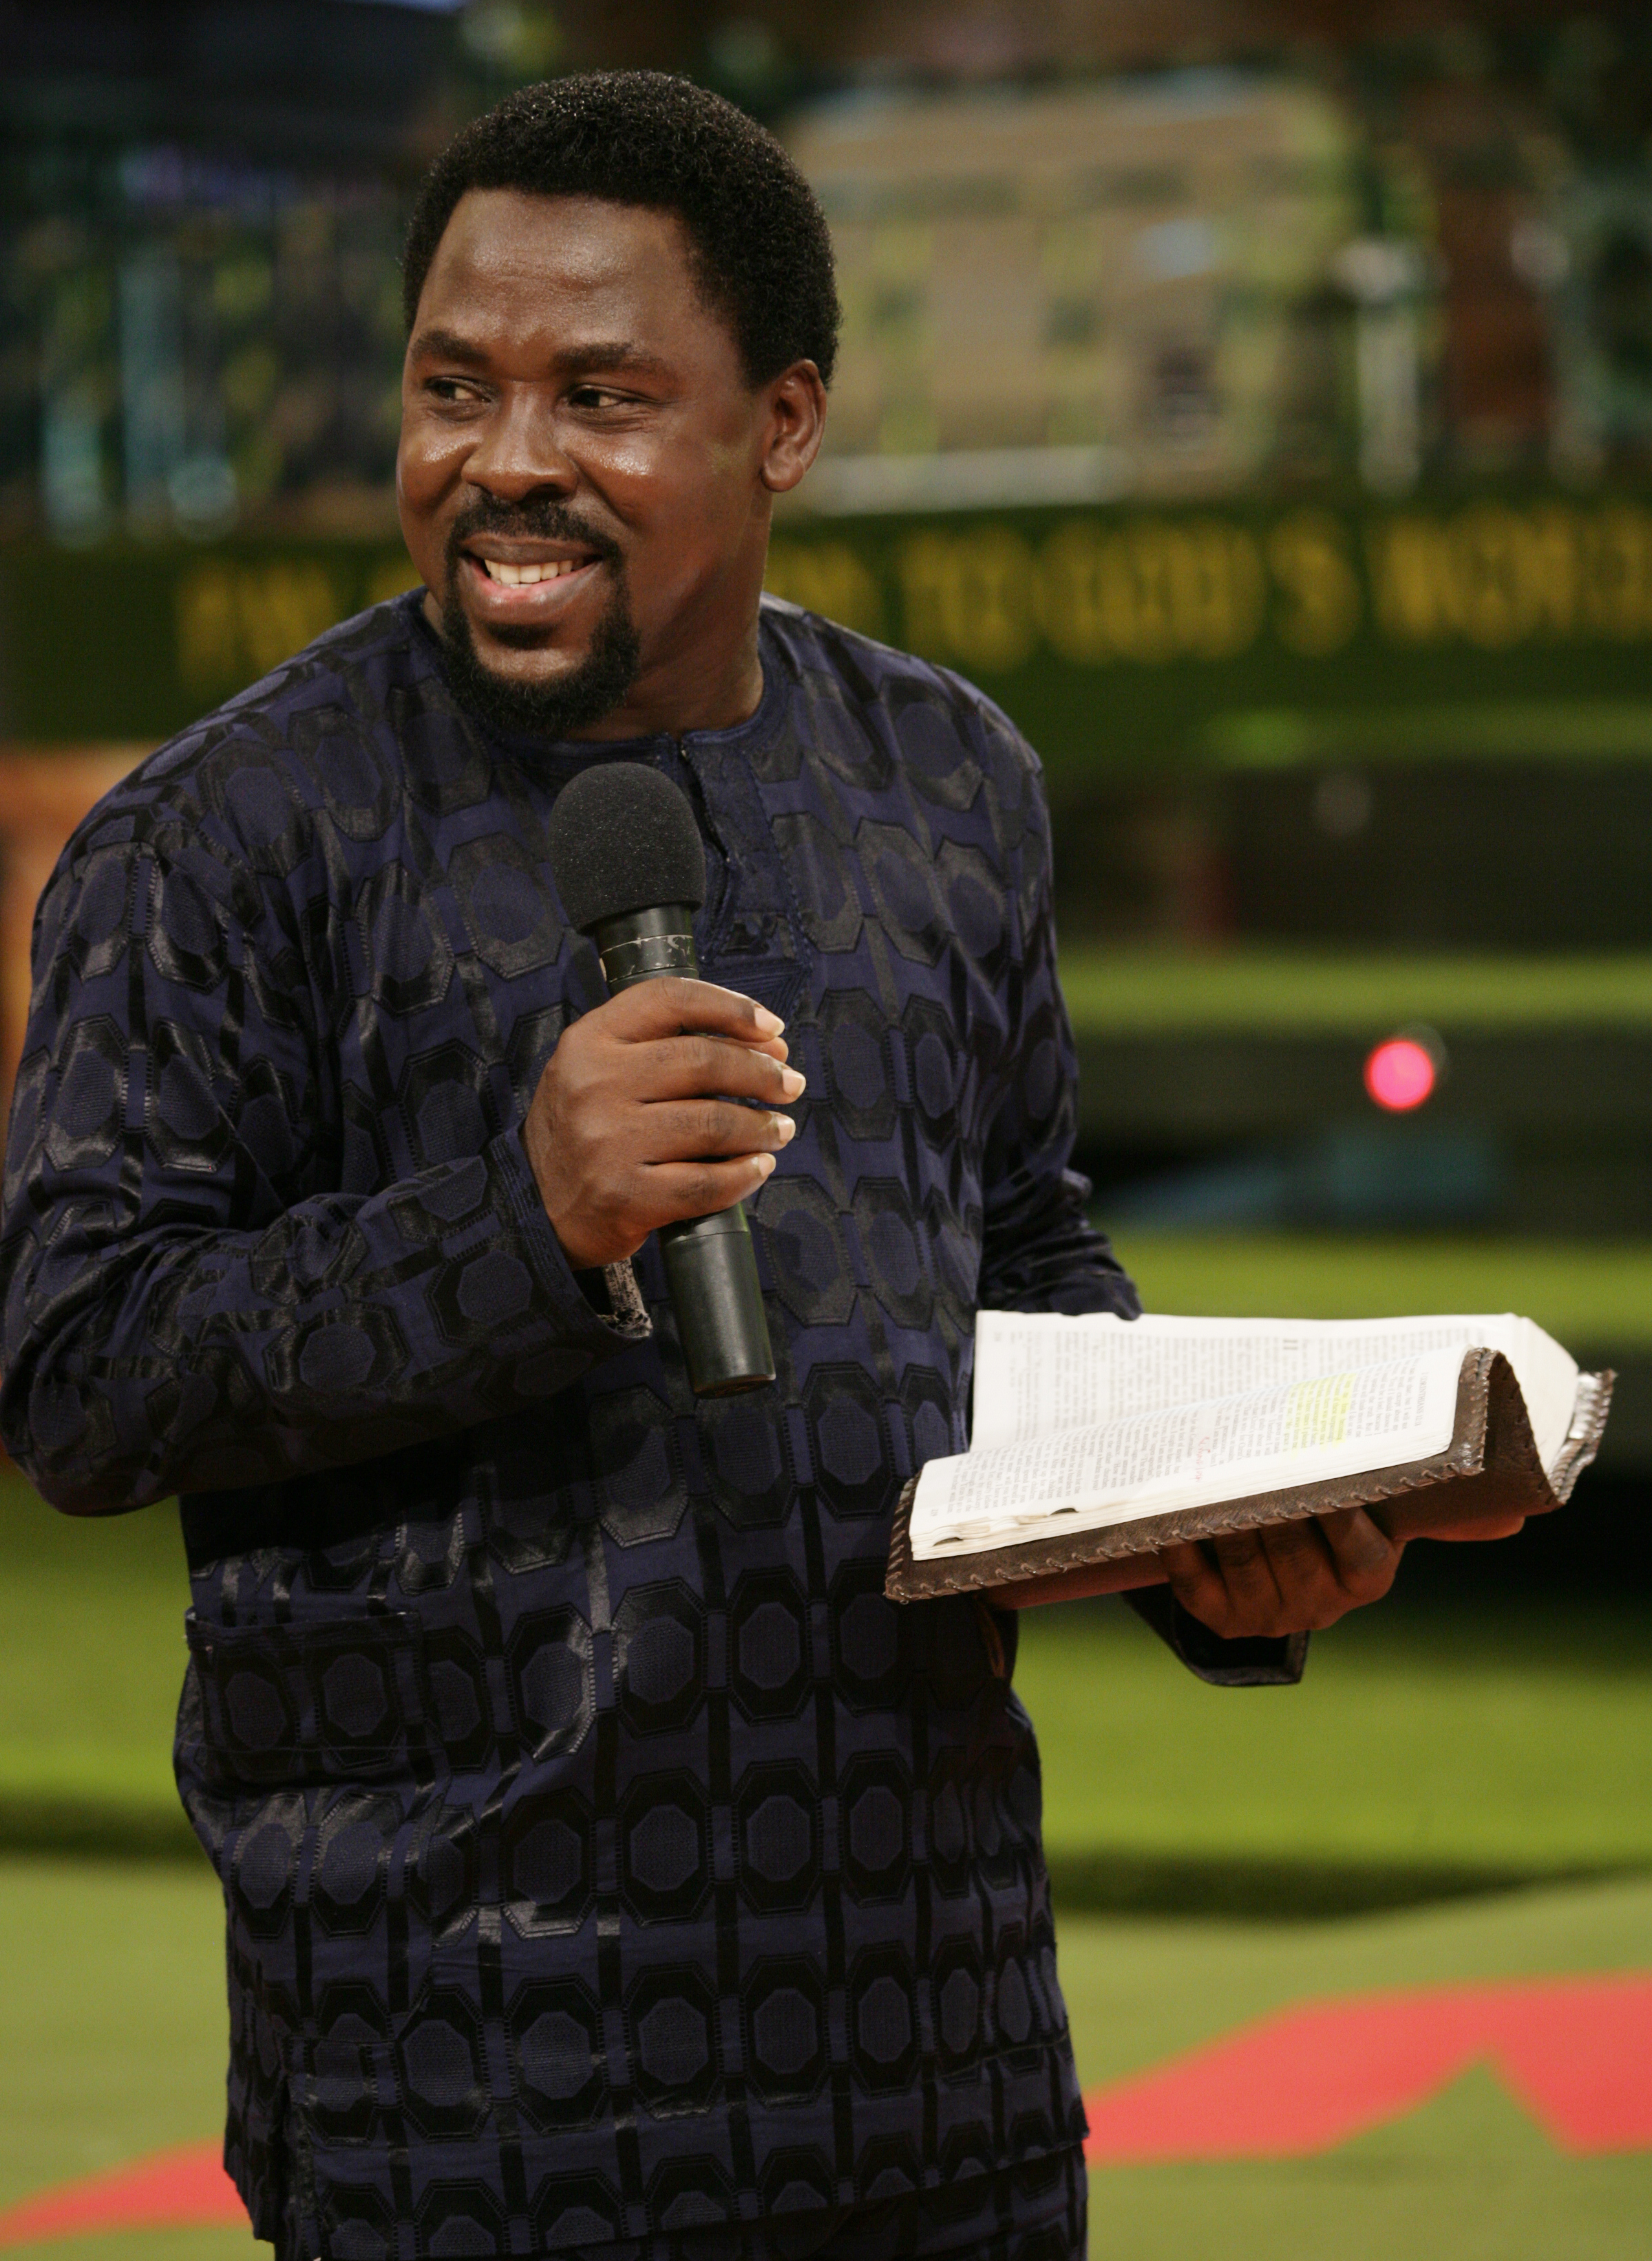 Prophet TB Joshua - In the University of God, however brilliant you may be, you will not be given double promotion - you must take every course because each course serves a purpose.